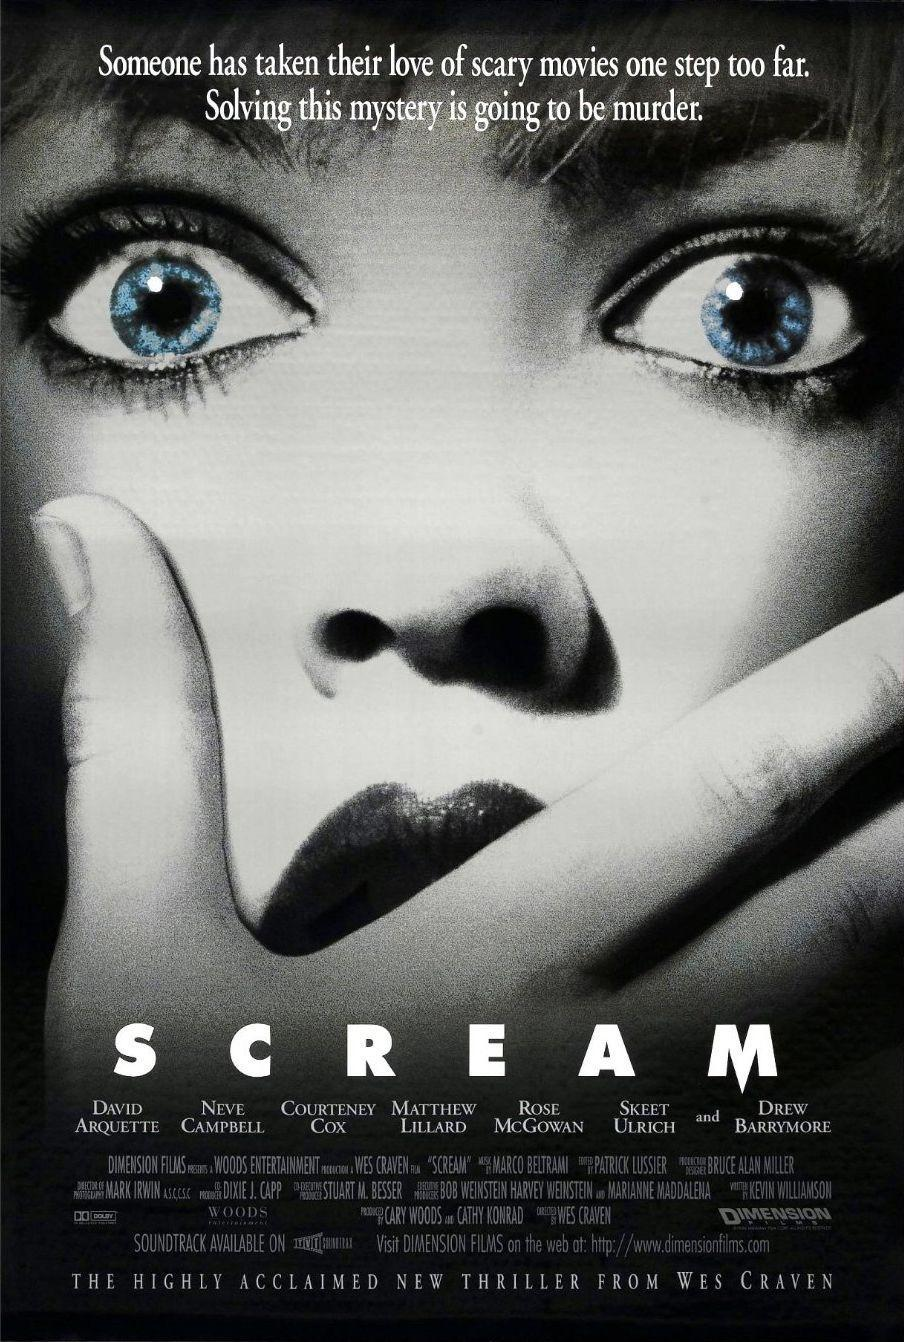 "<p>Though primarily known as a horror slasher film, <em>Scream</em> has plenty of murder mystery in this frightening (yet hilariously clever) story about a mysterious killer who terrorizes a group of high school students. Who could be behind the Ghostface mask?<br></p><p><a class=""link rapid-noclick-resp"" href=""https://www.amazon.com/gp/product/B00AYB12PC?tag=syn-yahoo-20&ascsubtag=%5Bartid%7C10055.g.34396232%5Bsrc%7Cyahoo-us"" rel=""nofollow noopener"" target=""_blank"" data-ylk=""slk:WATCH ON AMAZON"">WATCH ON AMAZON</a></p><p><strong>RELATED: </strong><a href=""https://www.goodhousekeeping.com/life/entertainment/g28067867/best-horror-movies-on-netflix/"" rel=""nofollow noopener"" target=""_blank"" data-ylk=""slk:The 30 Best Netflix Horror Movies Will Make You Scream"" class=""link rapid-noclick-resp"">The 30 Best Netflix Horror Movies Will Make You Scream</a></p>"